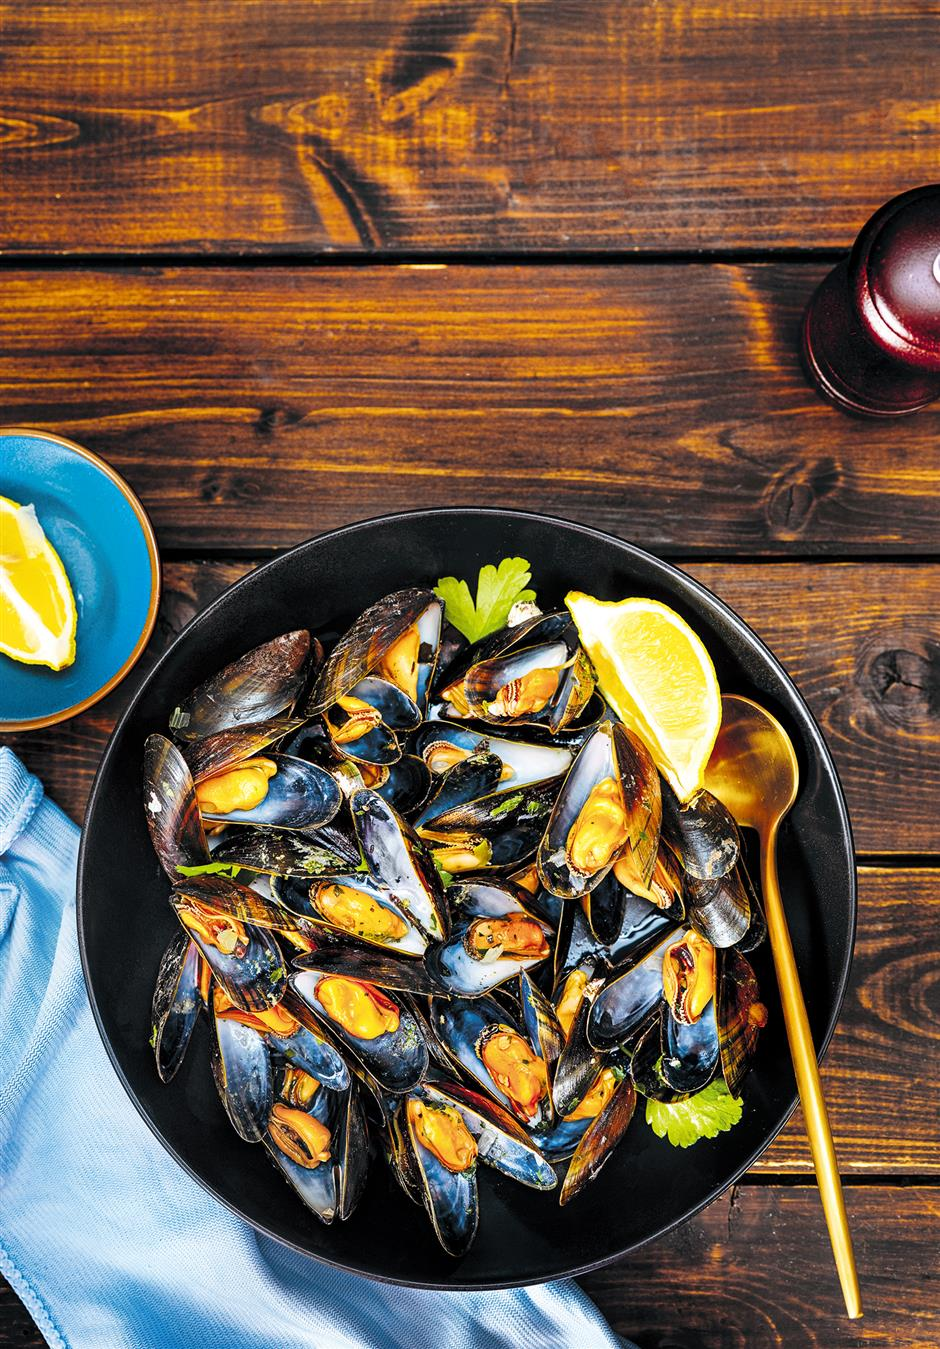 Time to make the most of mussels